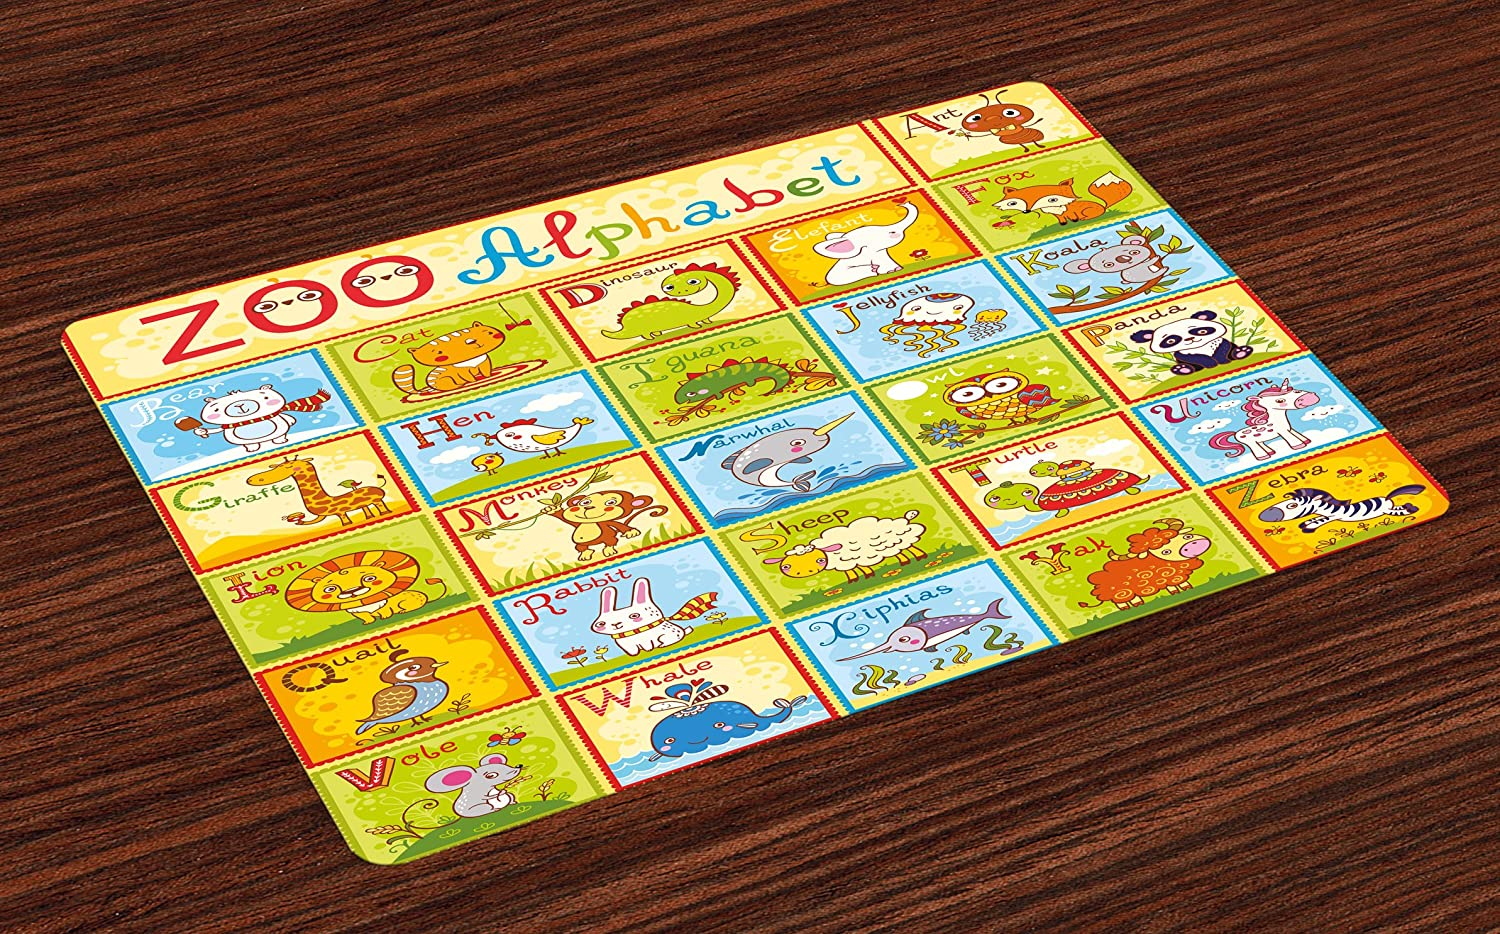 Ambesonne Educational Place Mats Set of 4, Zoo Alphabet Design Colorful Style Funny Cartoon Animals Children Kids School, Washable Fabric Placemats for Dining Room Kitchen Table Decor, Multicolor